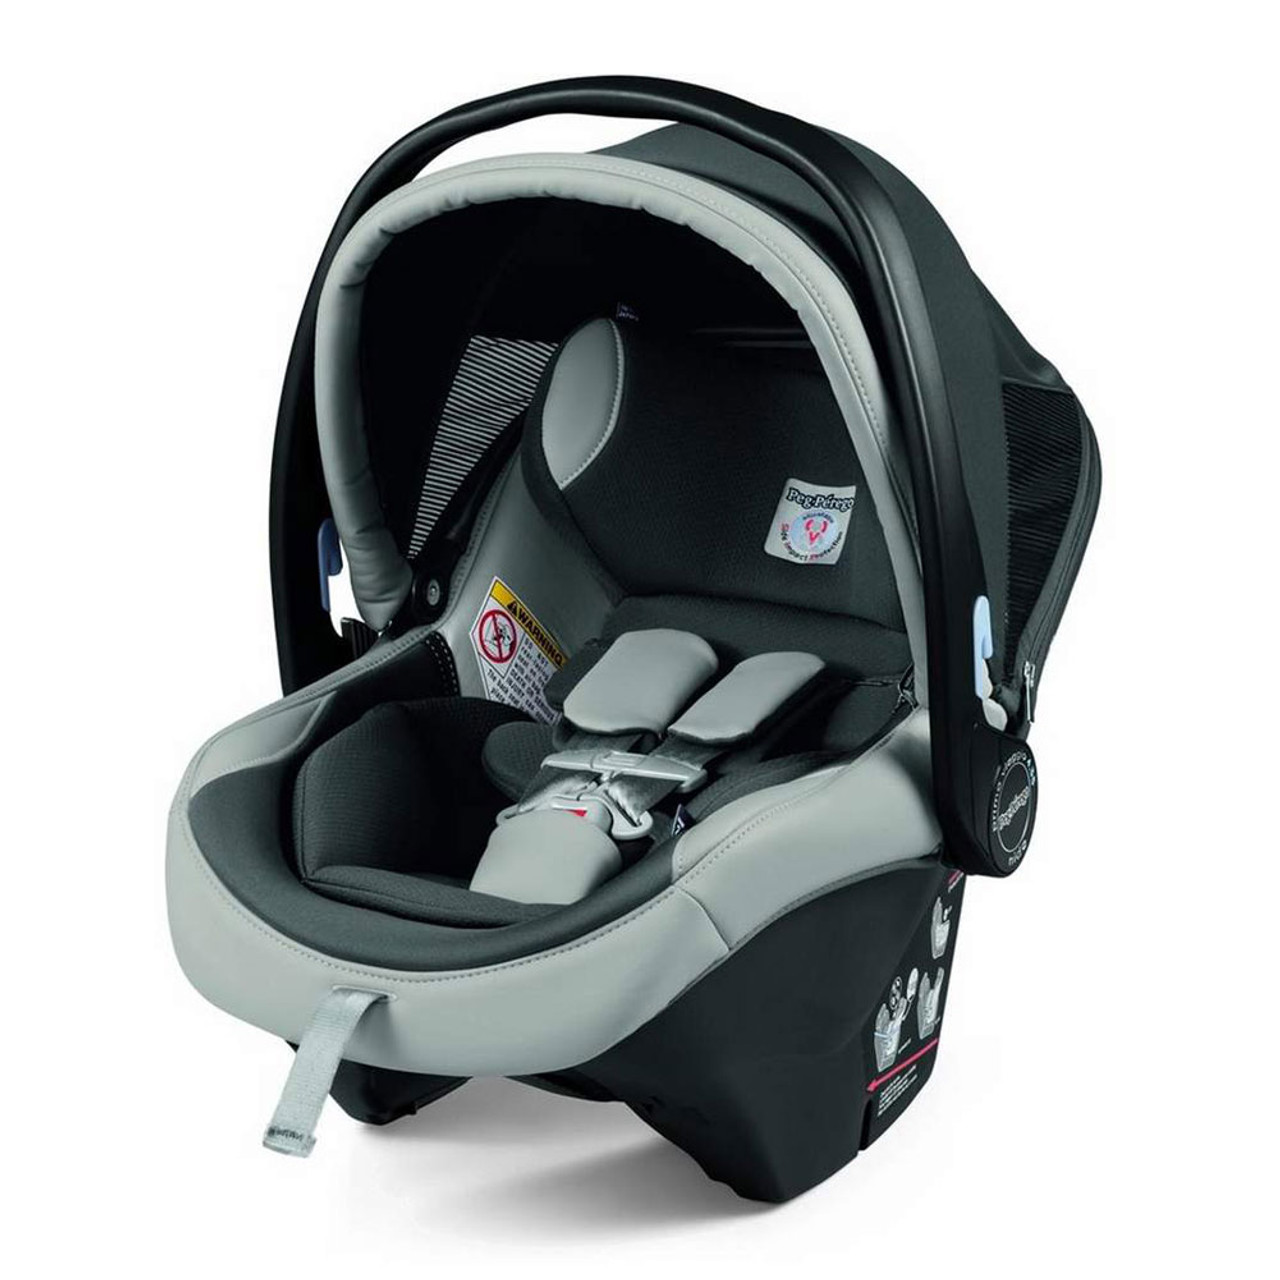 Peg Perego Primo Viaggio Nido 4 35 Infant Car Seat Eco Leather